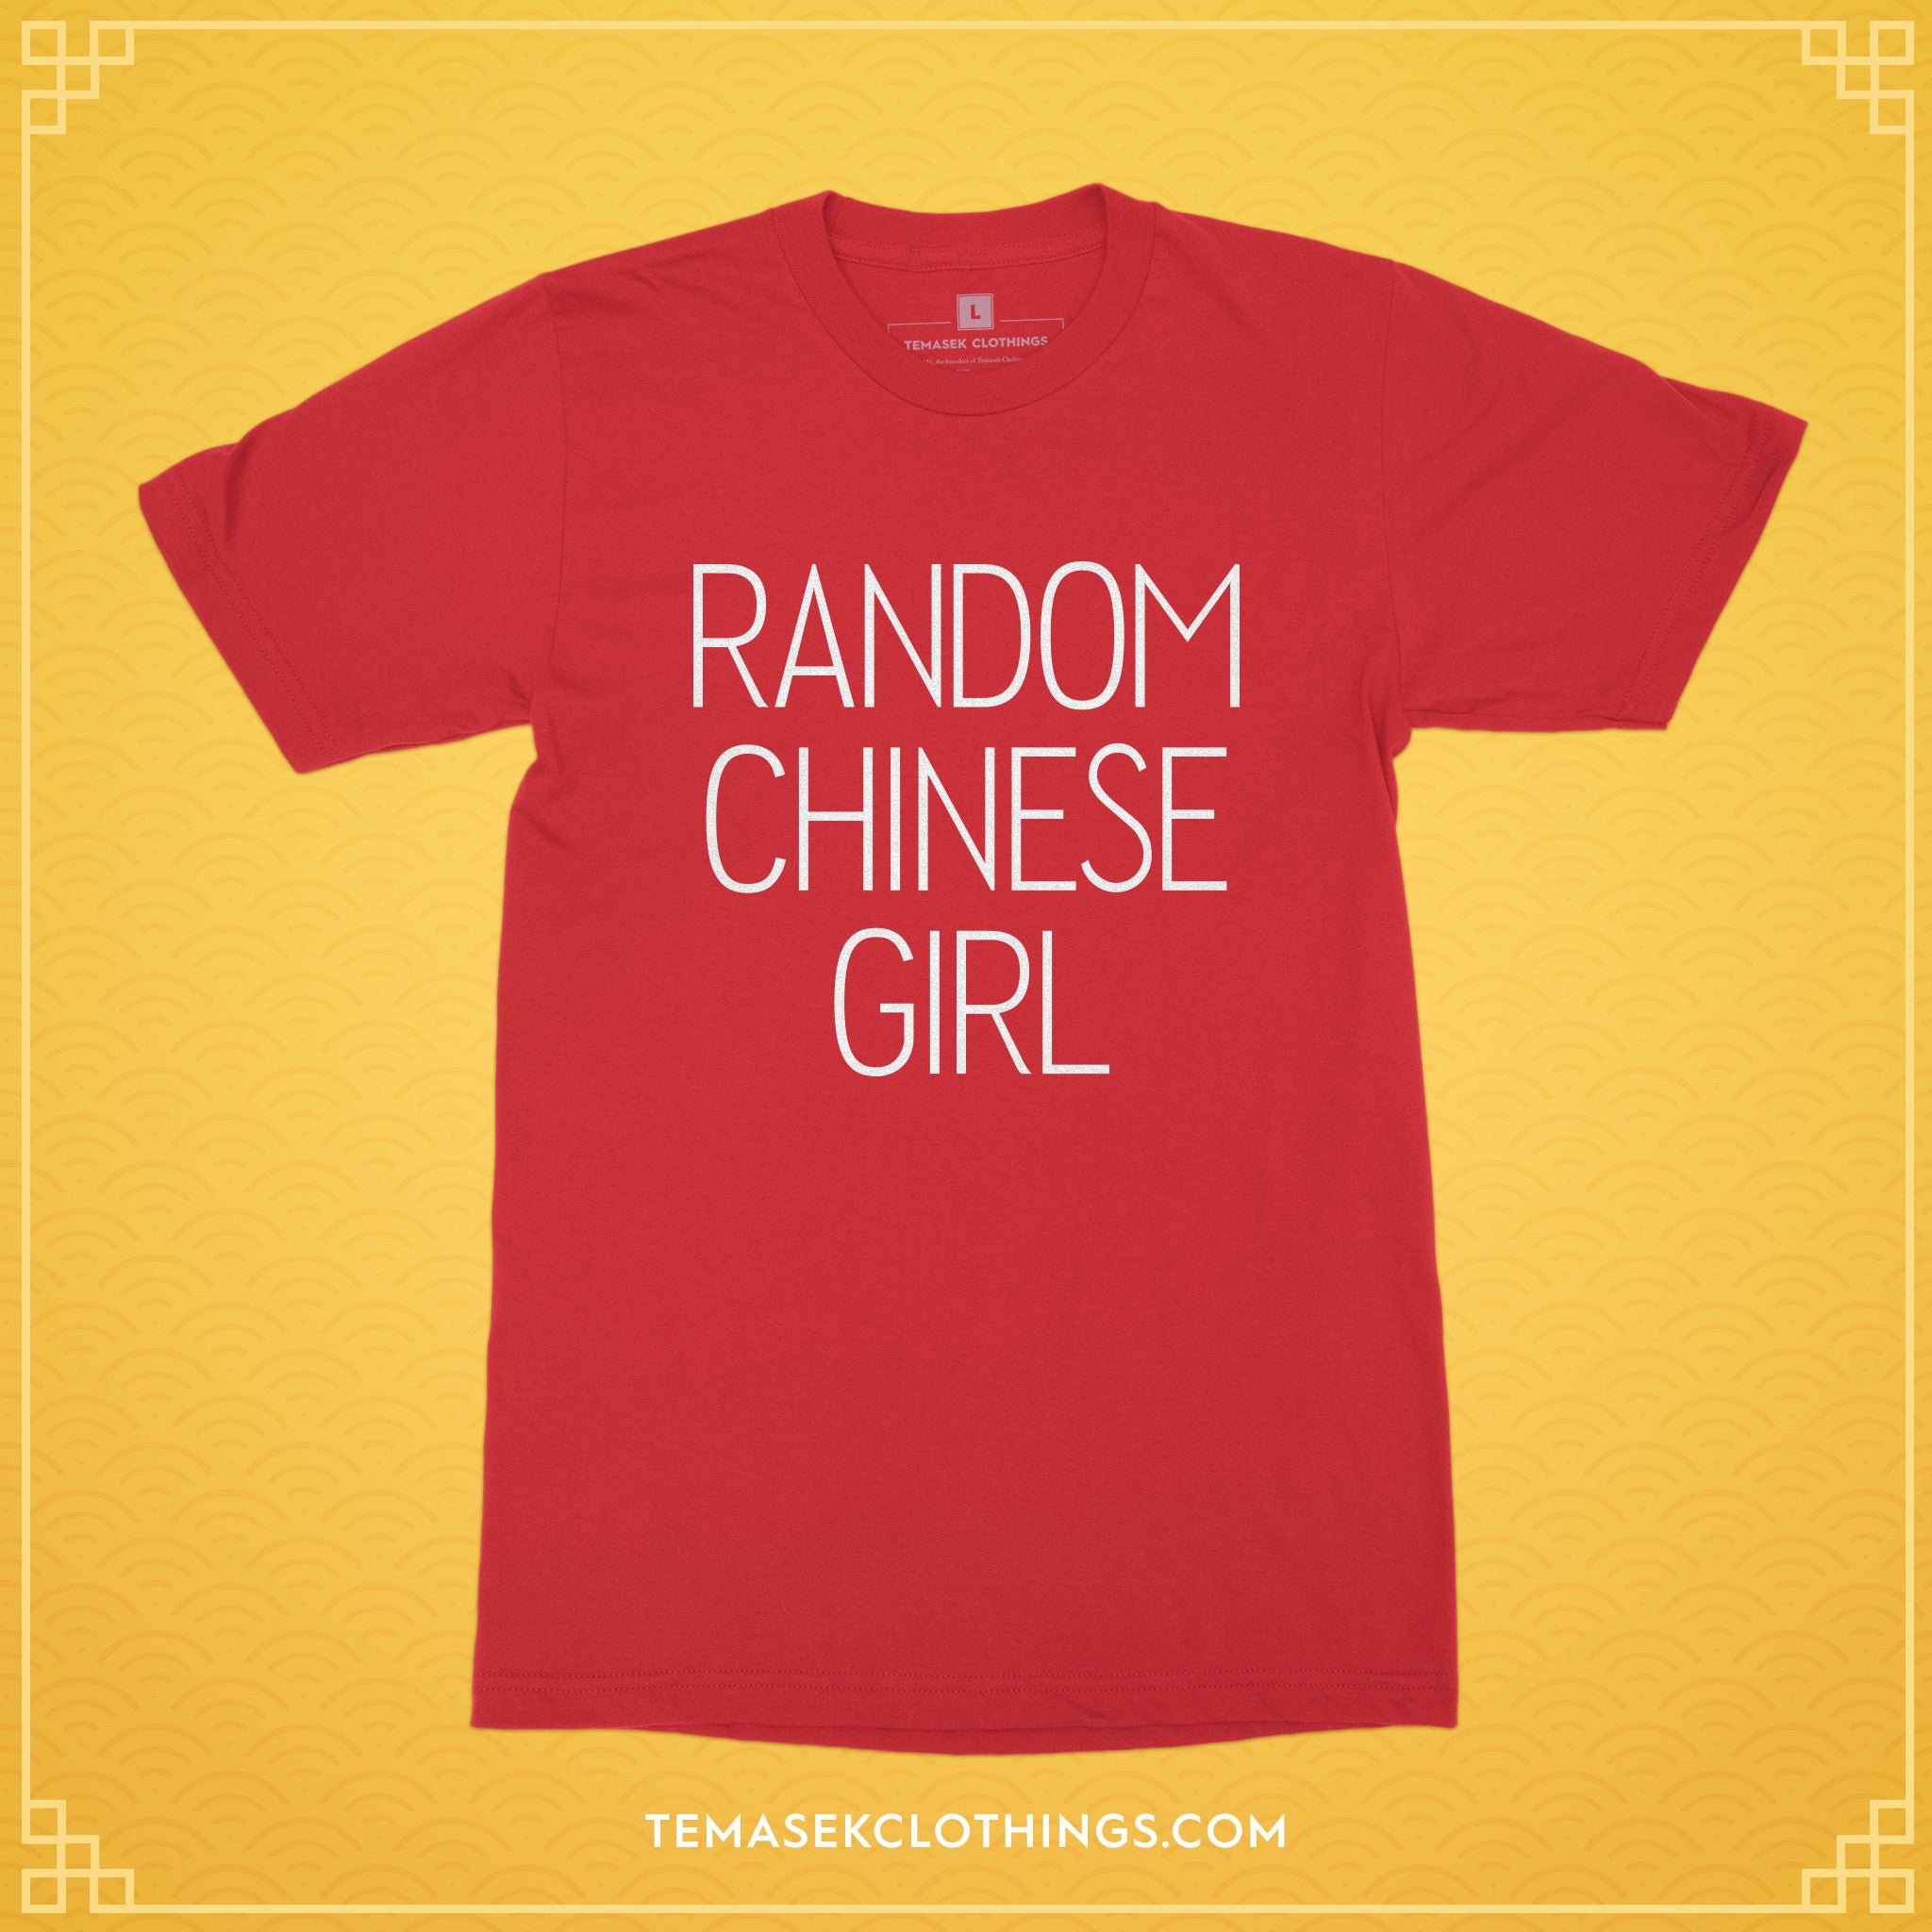 737c5eec70f9c Temasek Clothings - LIMITED EDITION Random Chinese Girl in Red T-shirt